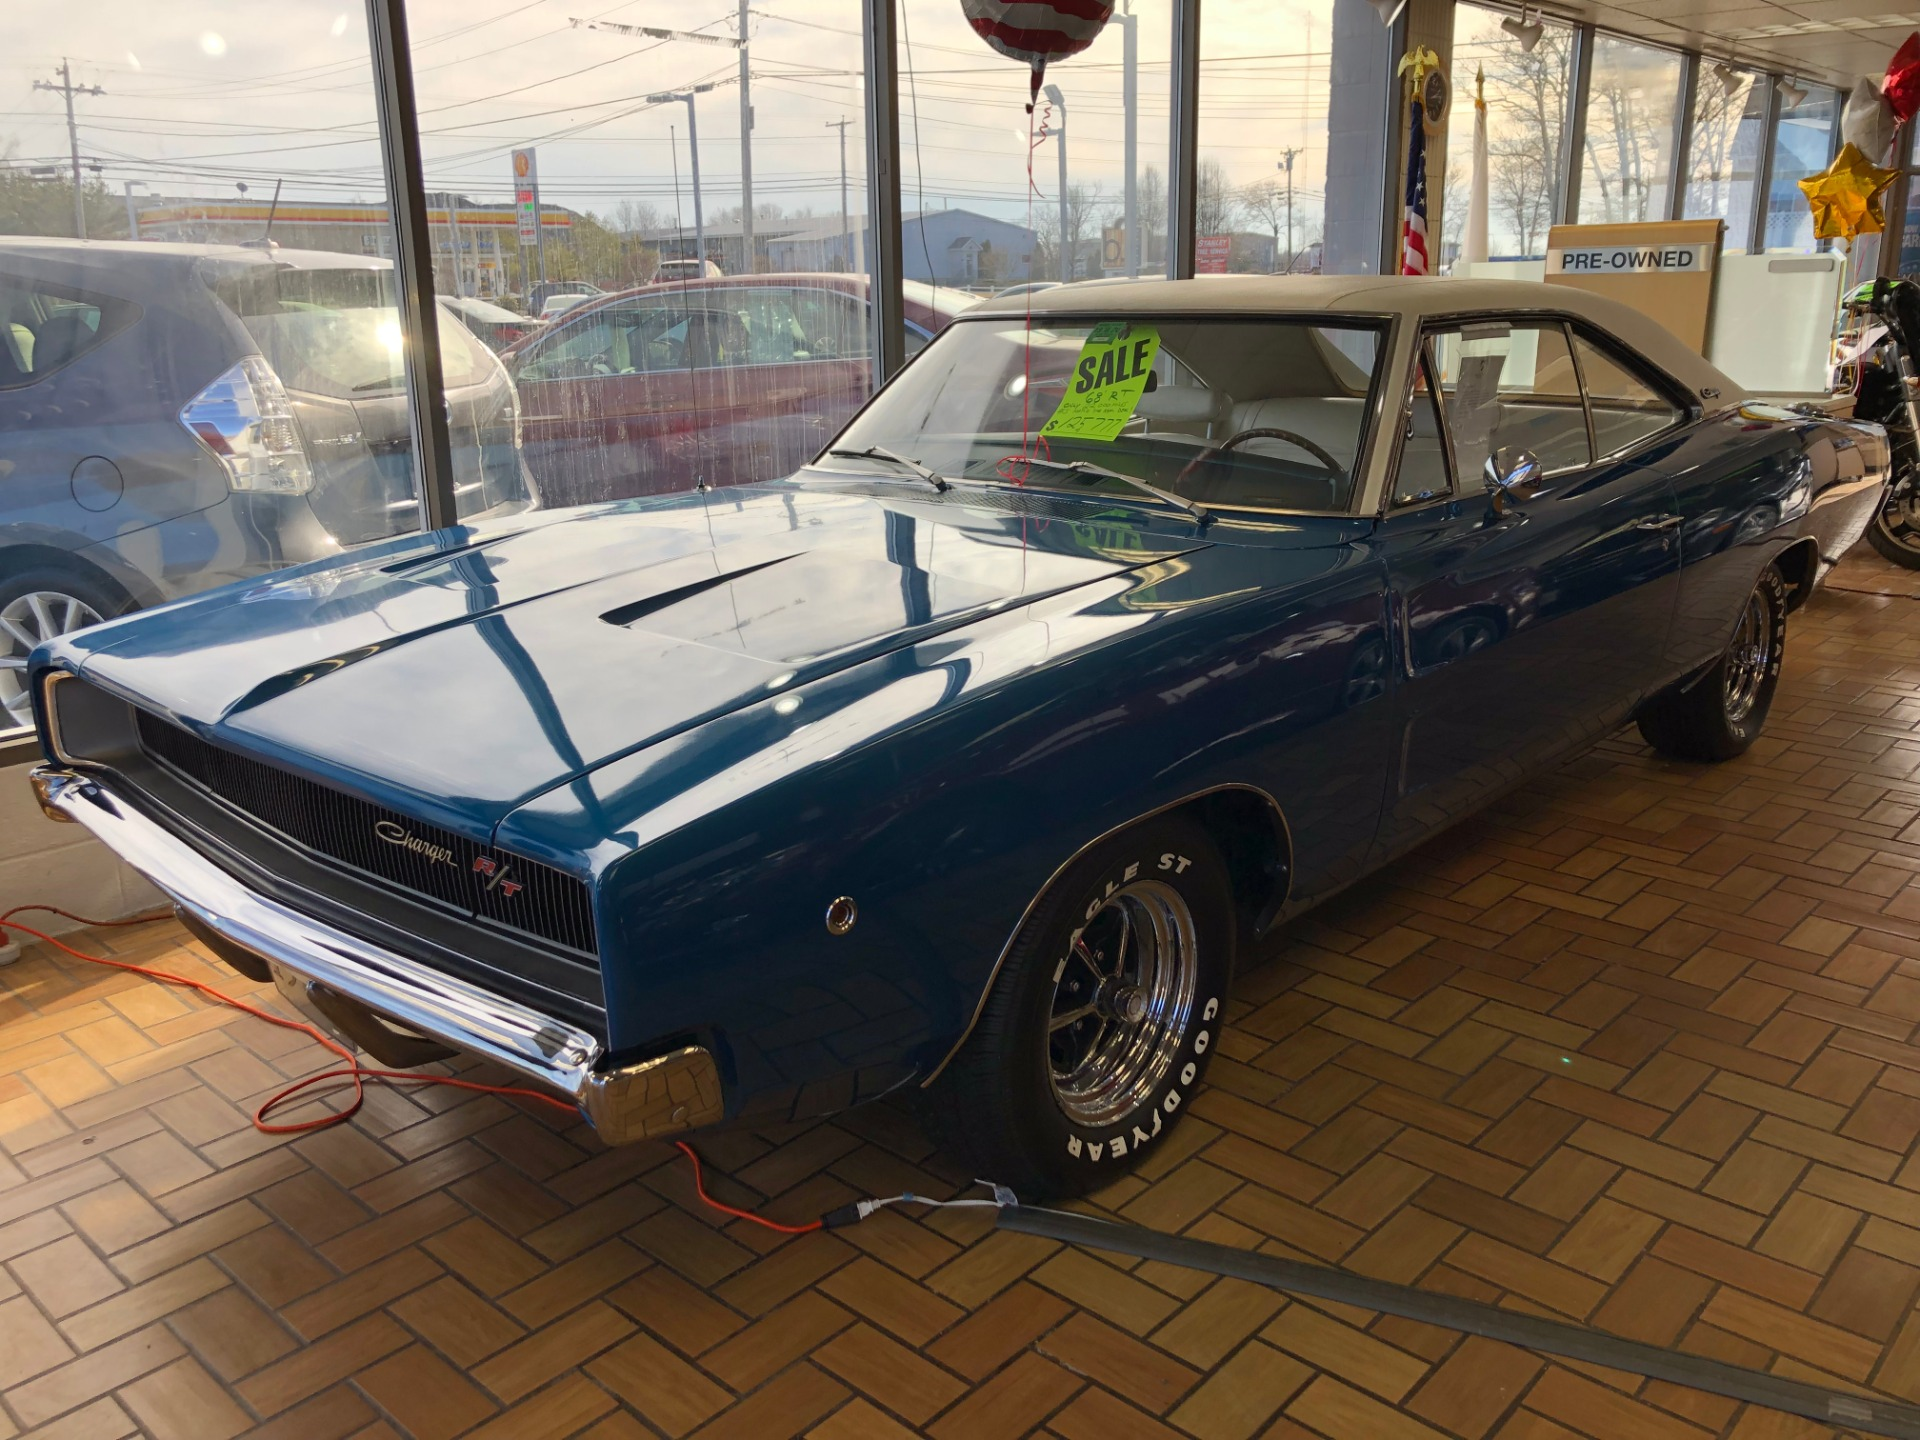 1968 dodge charger rt stock jc68rt for sale near smithfield ri ri dodge dealer. Black Bedroom Furniture Sets. Home Design Ideas